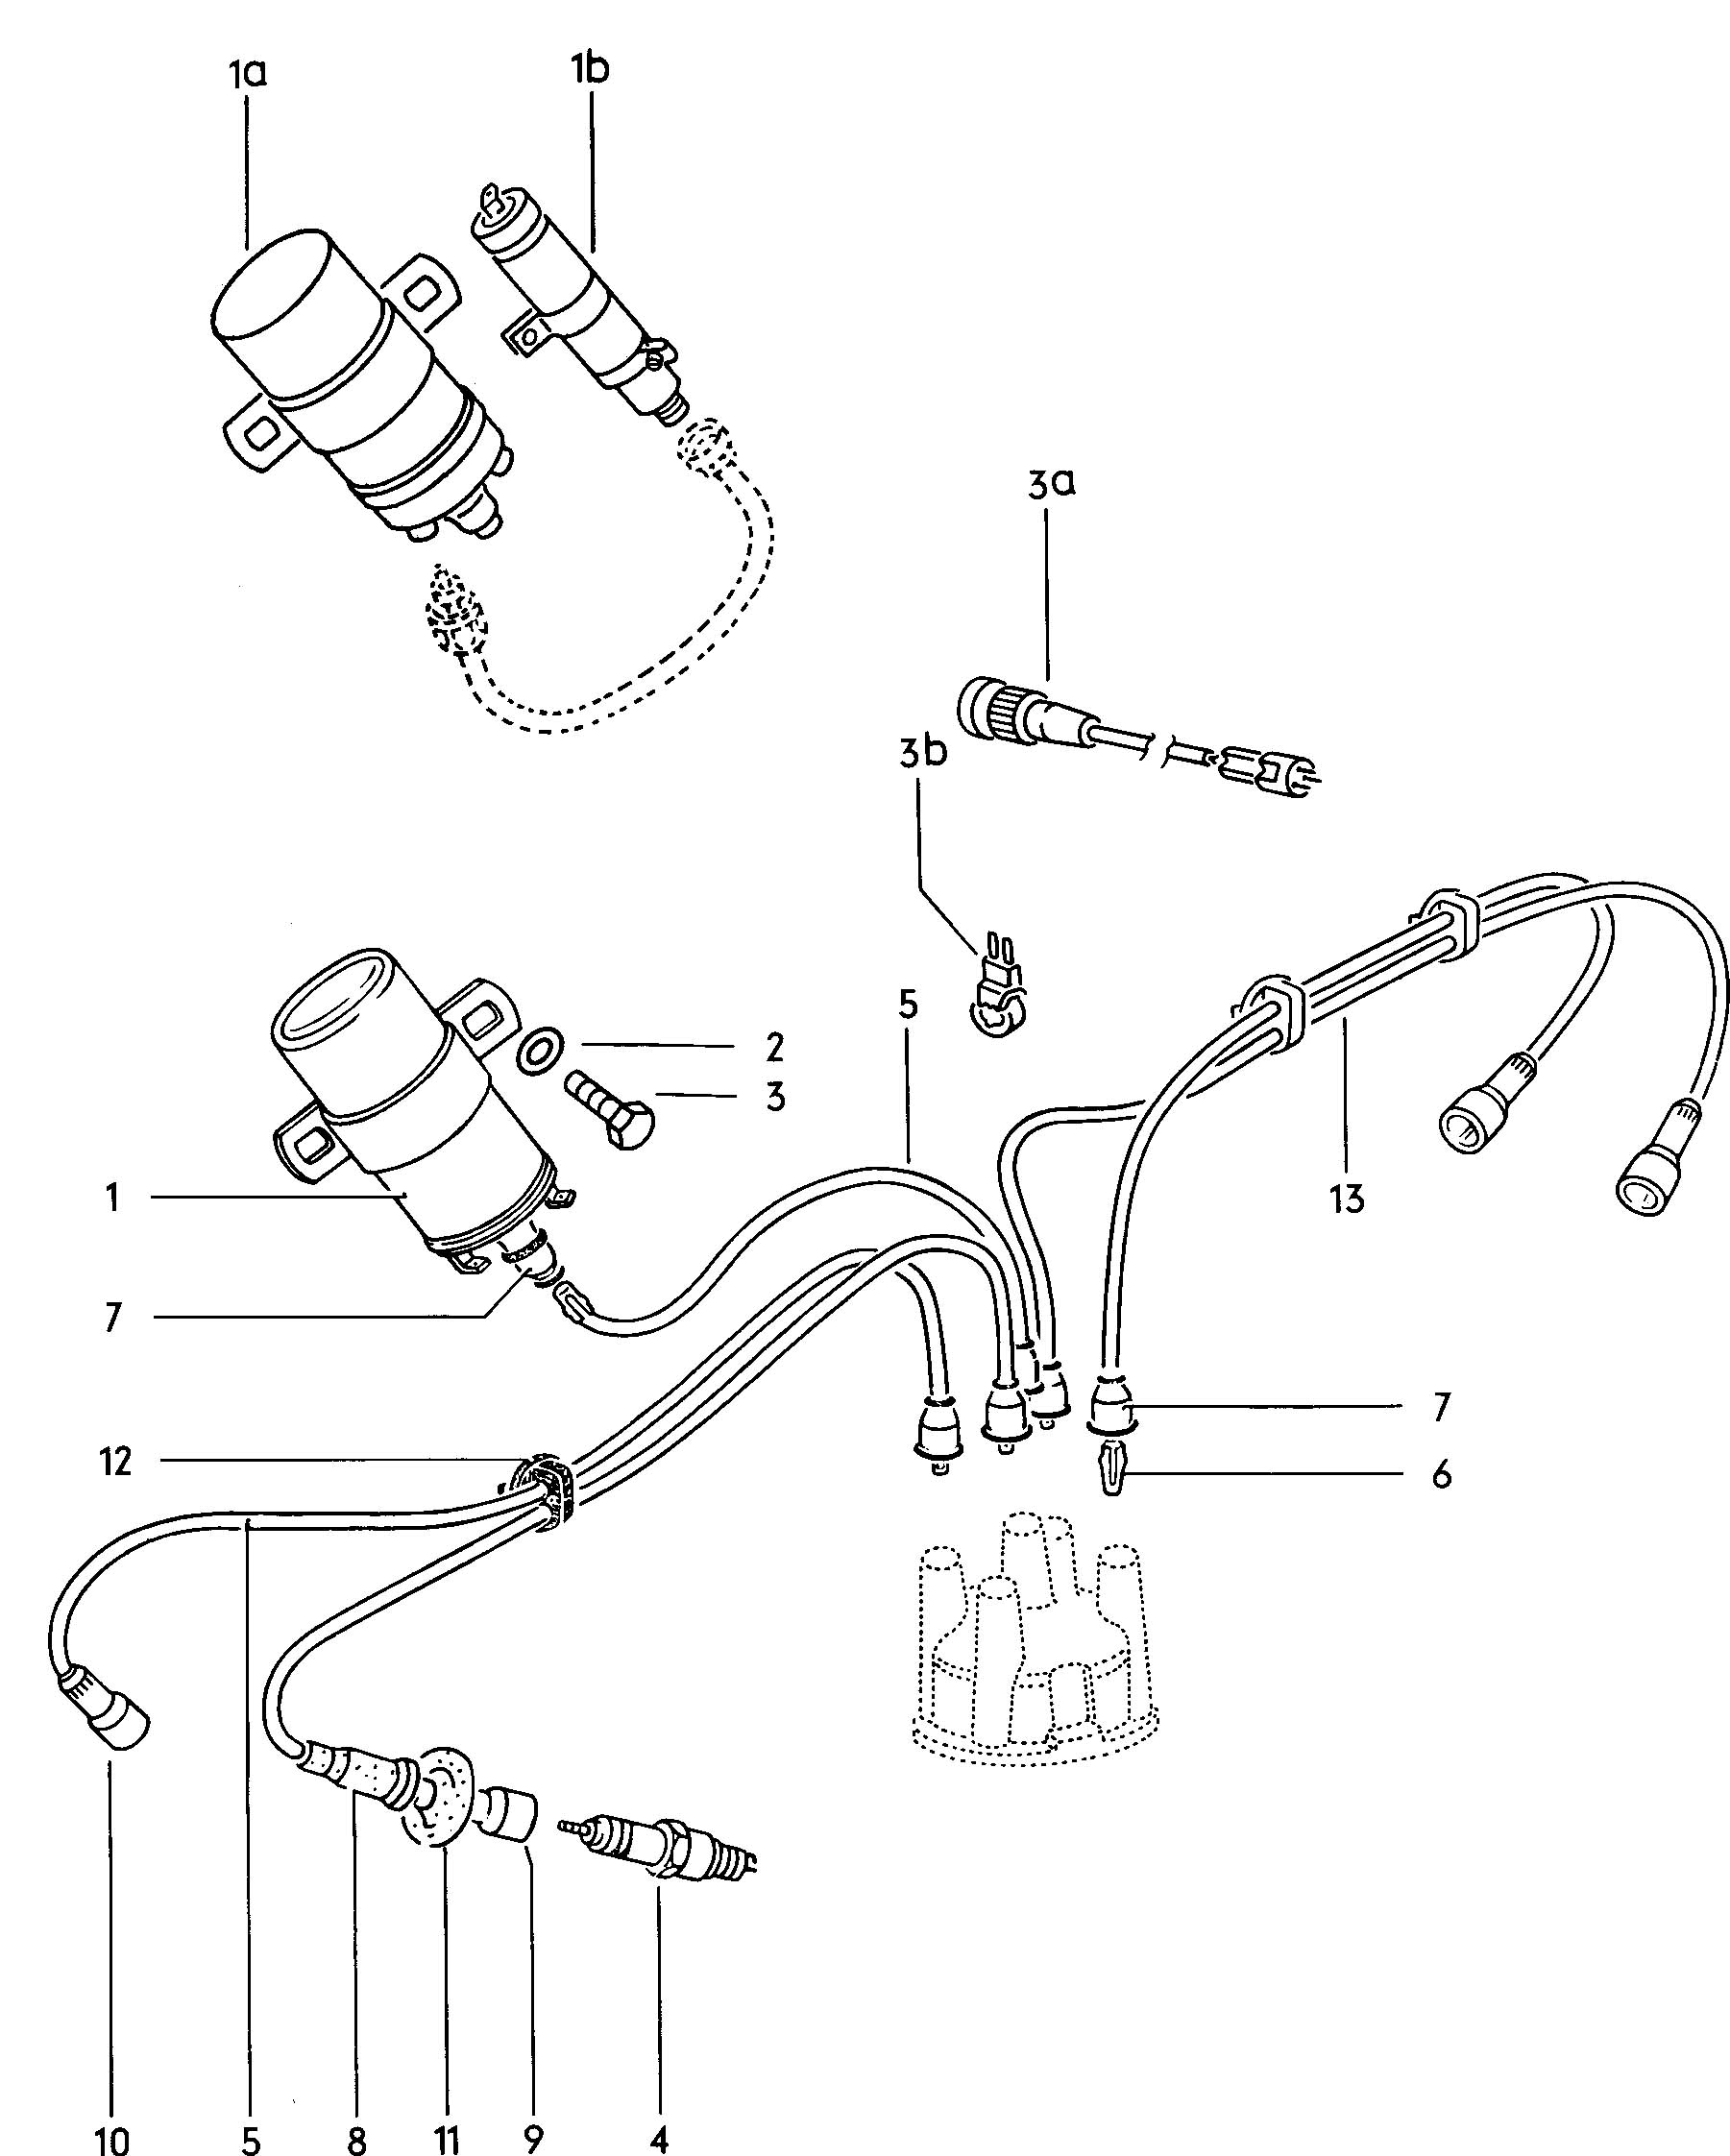 Vw Distributor Diagram Getting Ready With Wiring 1972 Chevy Truck Headlight 1600 Ignition Coil Get Free Image Beetle